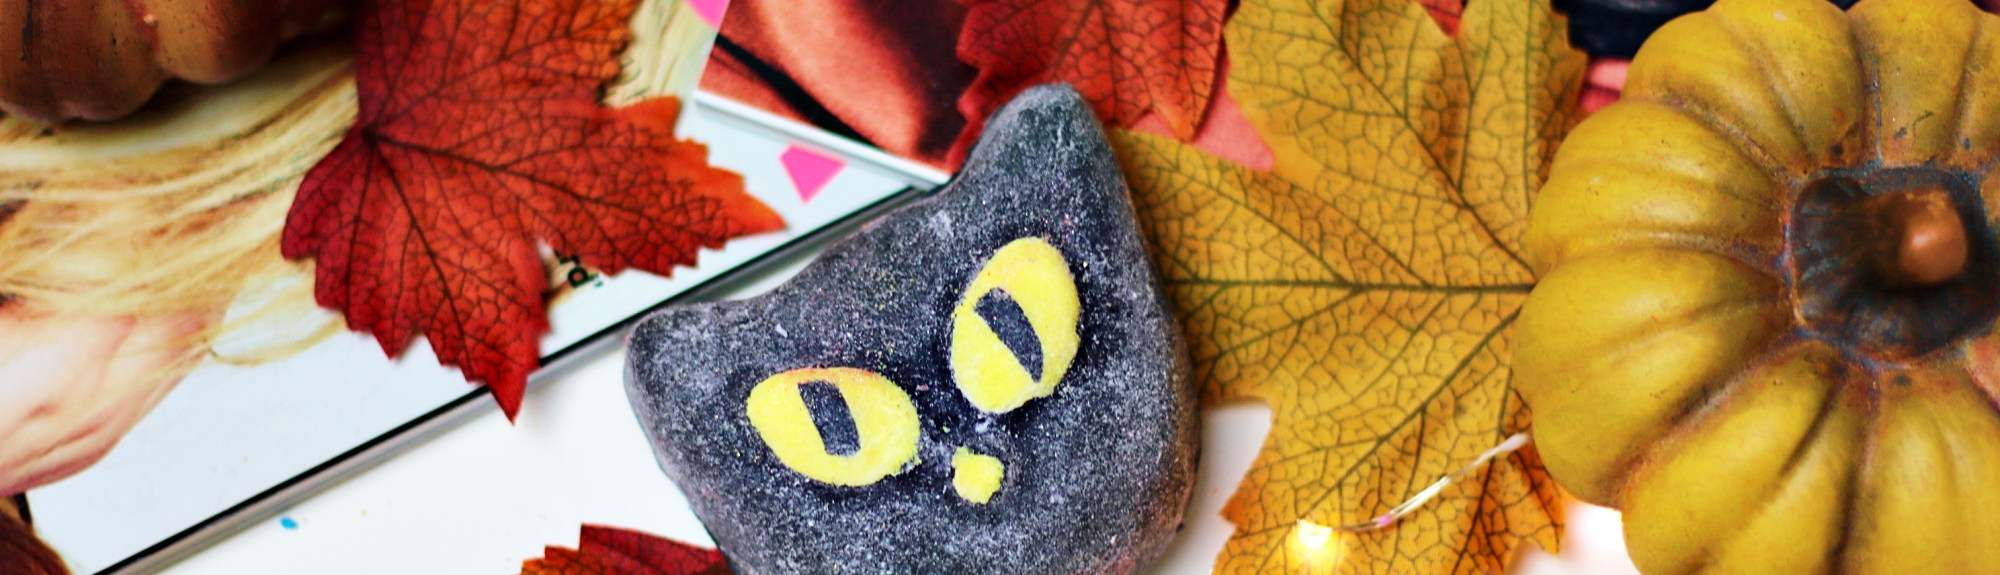 Lush Halloween 2019 Bewitched Bubble Bar